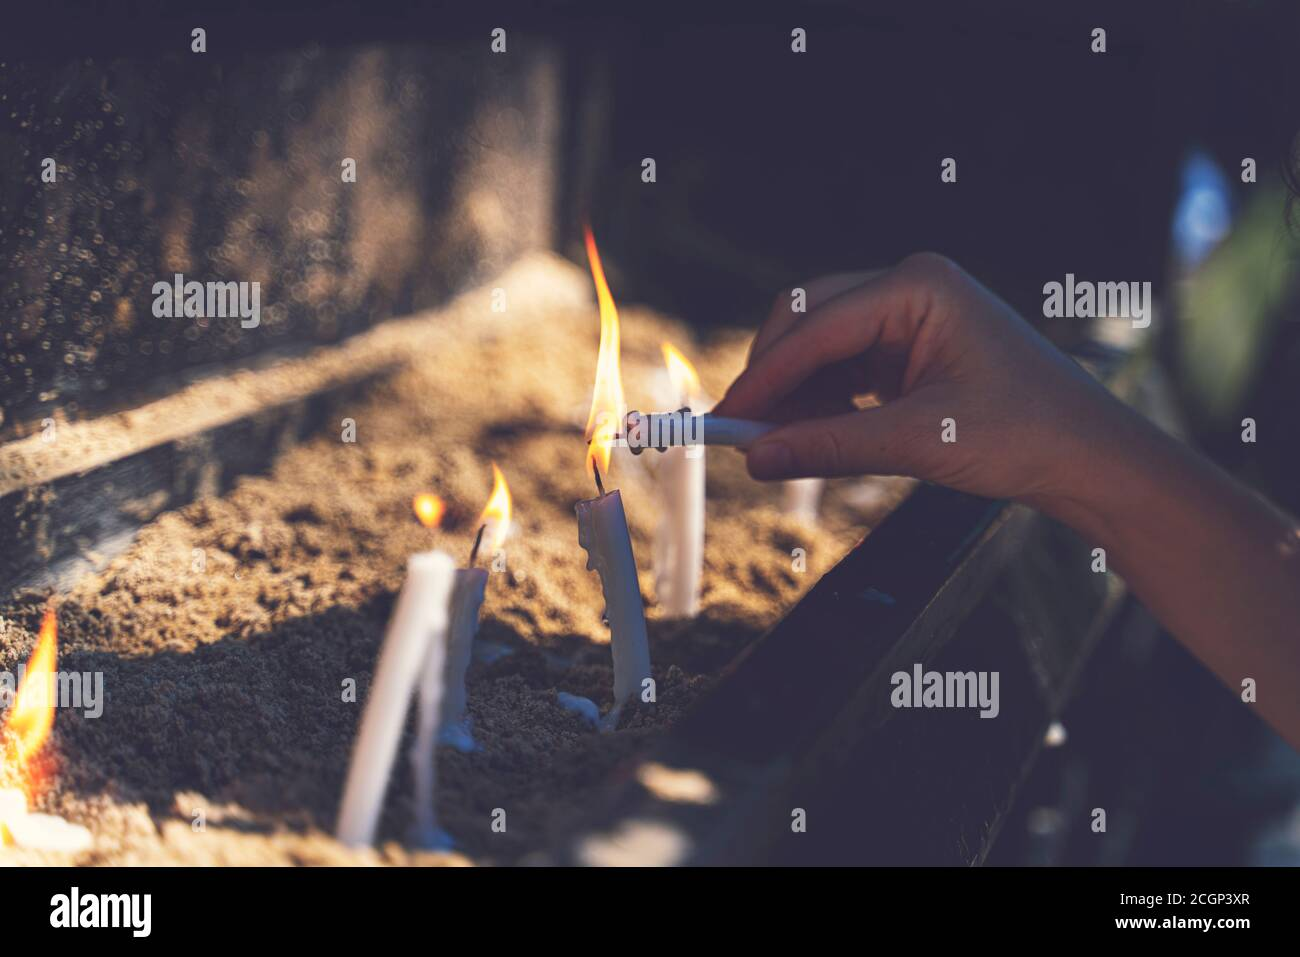 Woman praying and burning candles in the garden of the Virgin Mary house. Burning white candles on stand. Worship Stock Photo